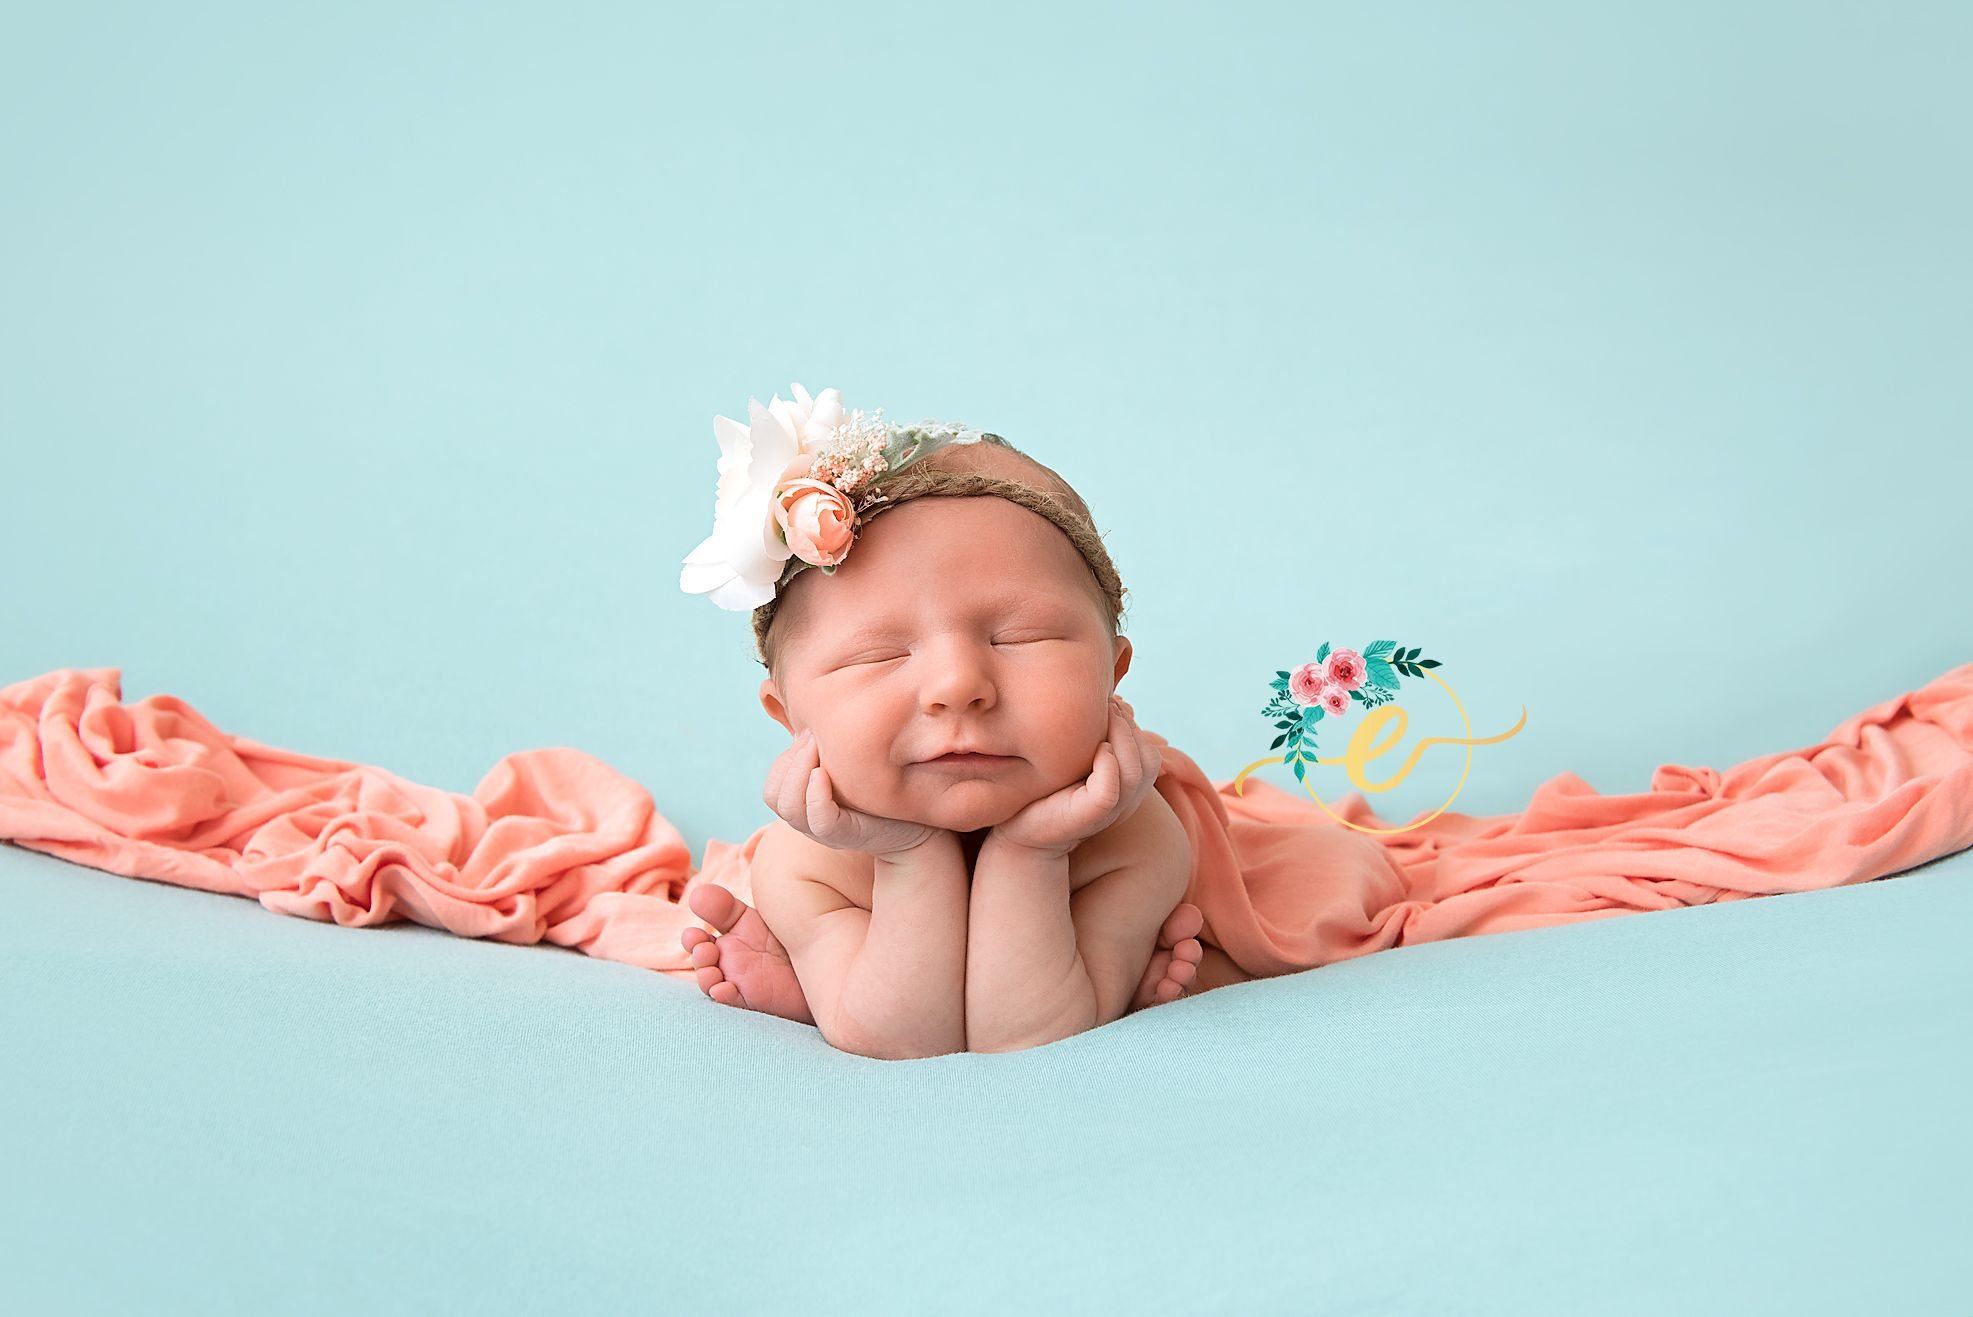 Newborn photography newborn girl frog pose easleylifephotography newborn